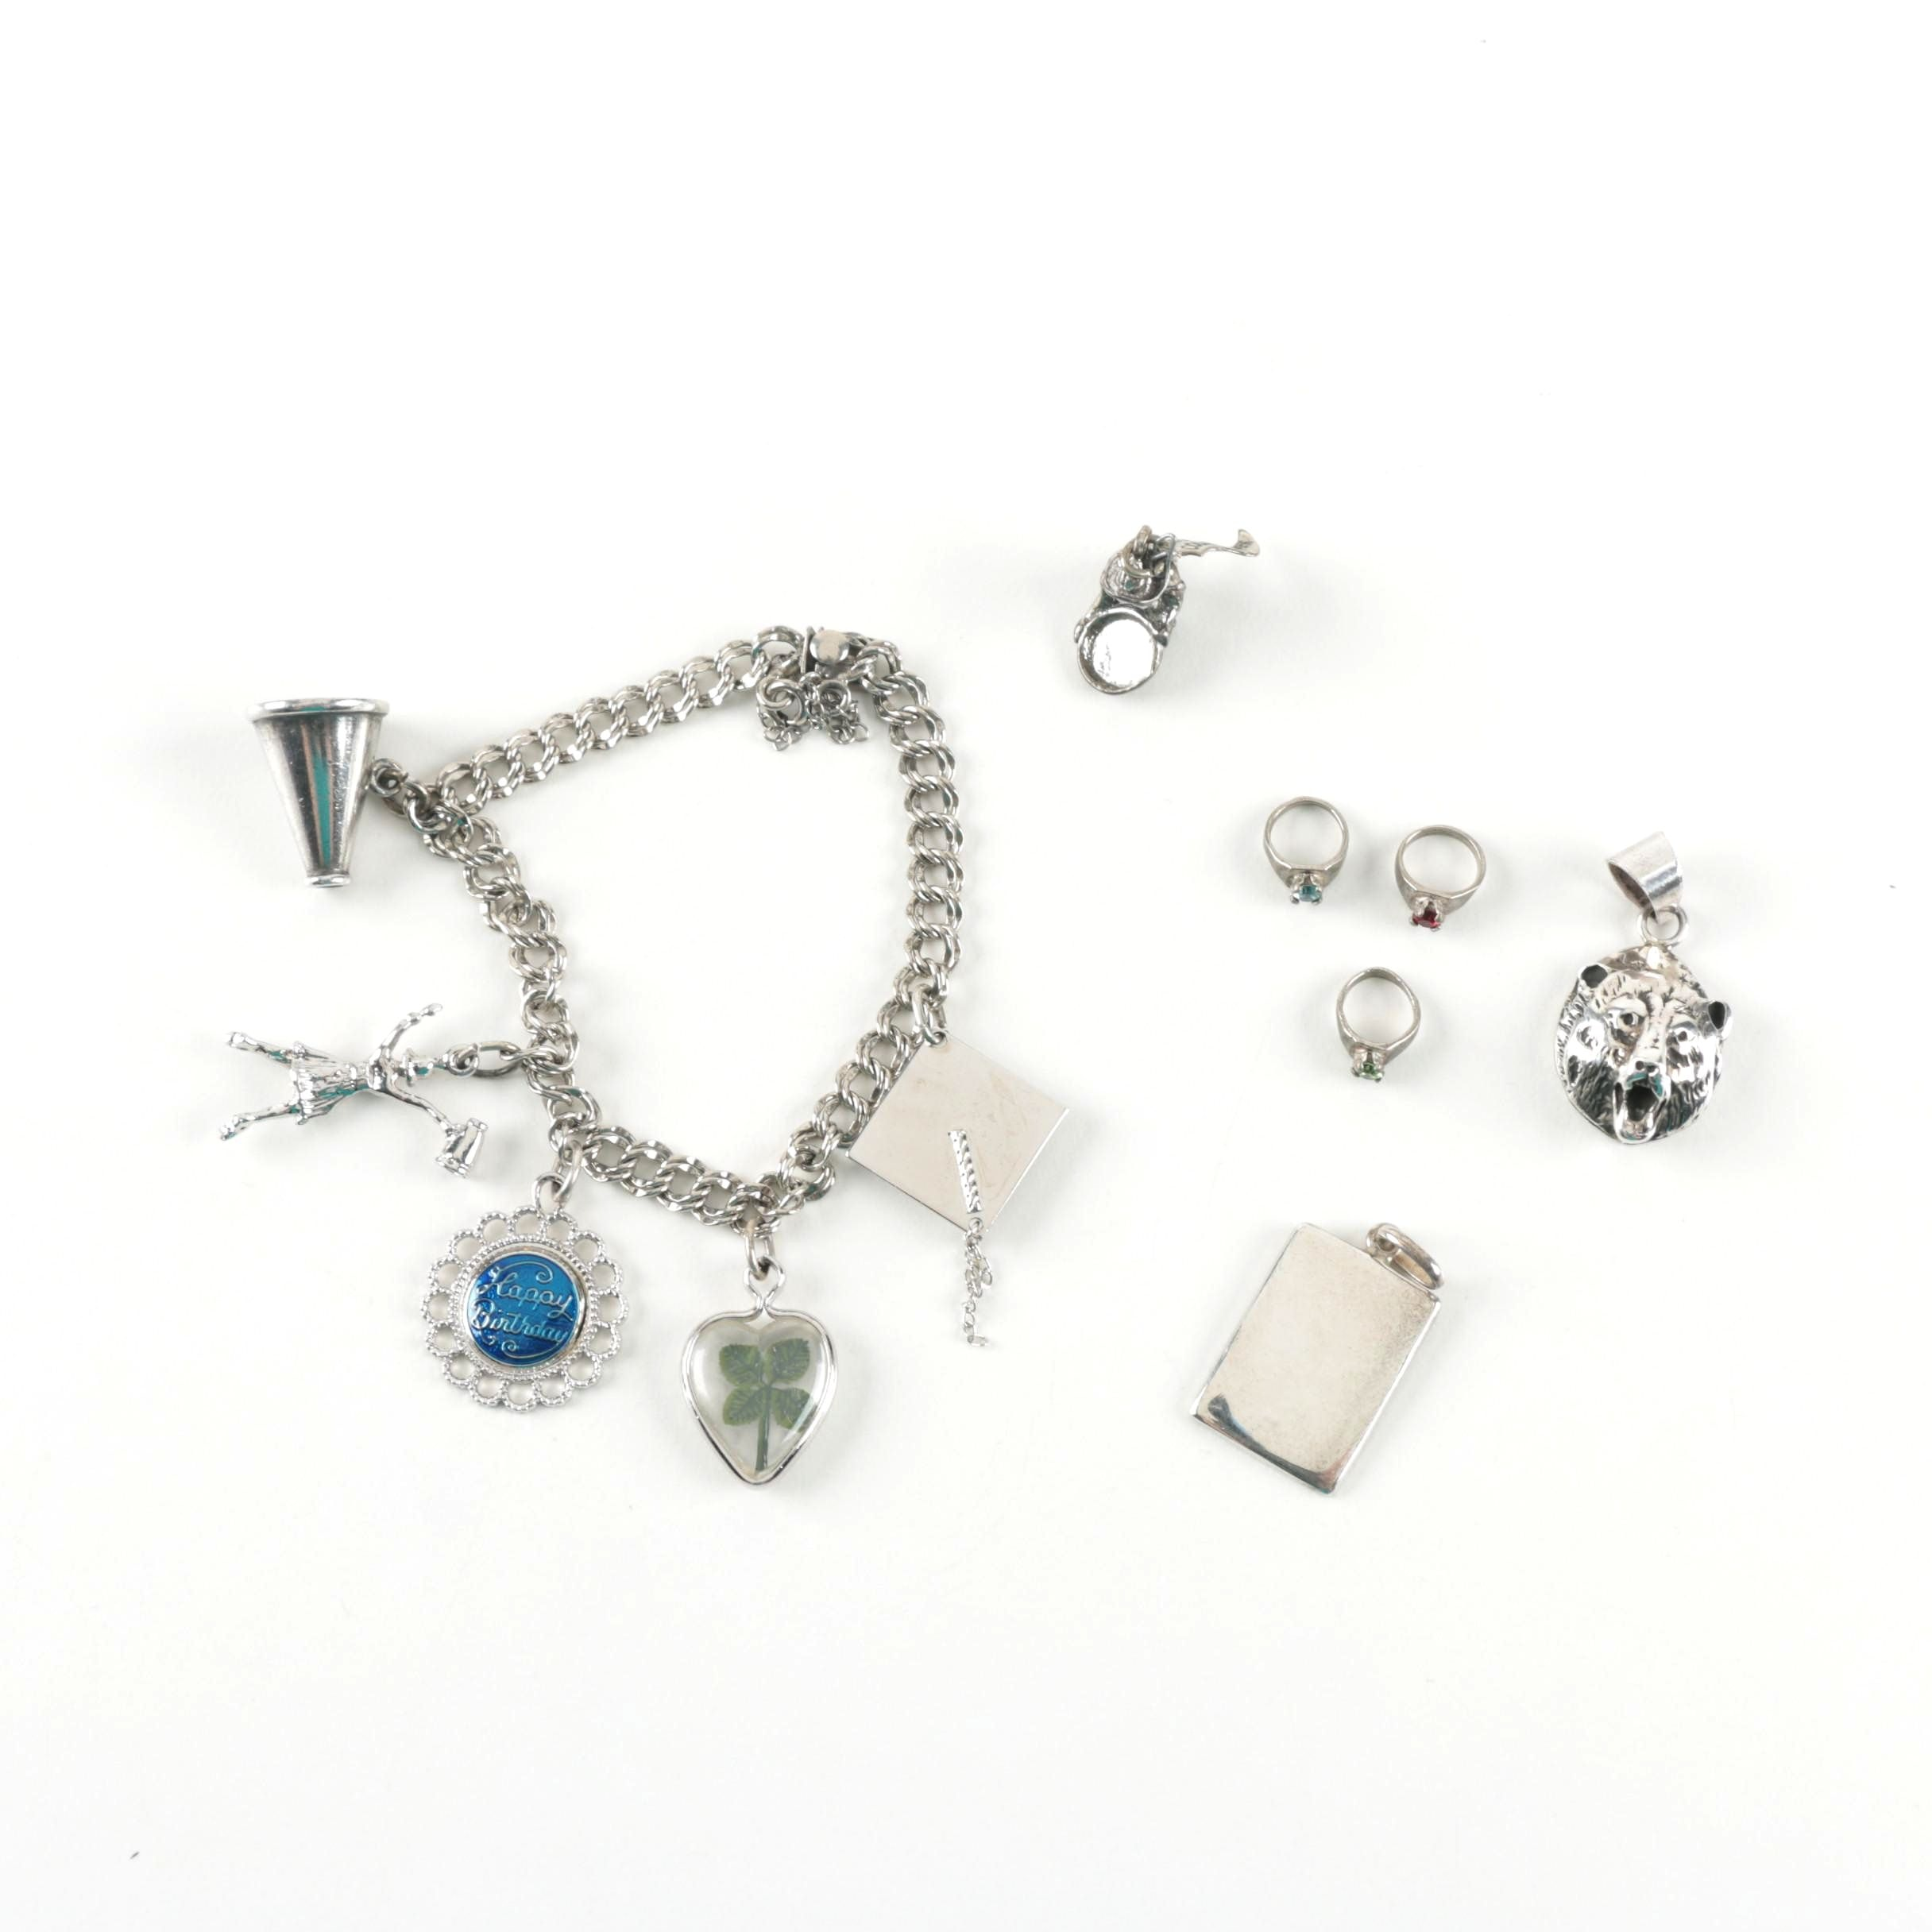 Sterling Charm Bracelet with Loose Charms and Pendants